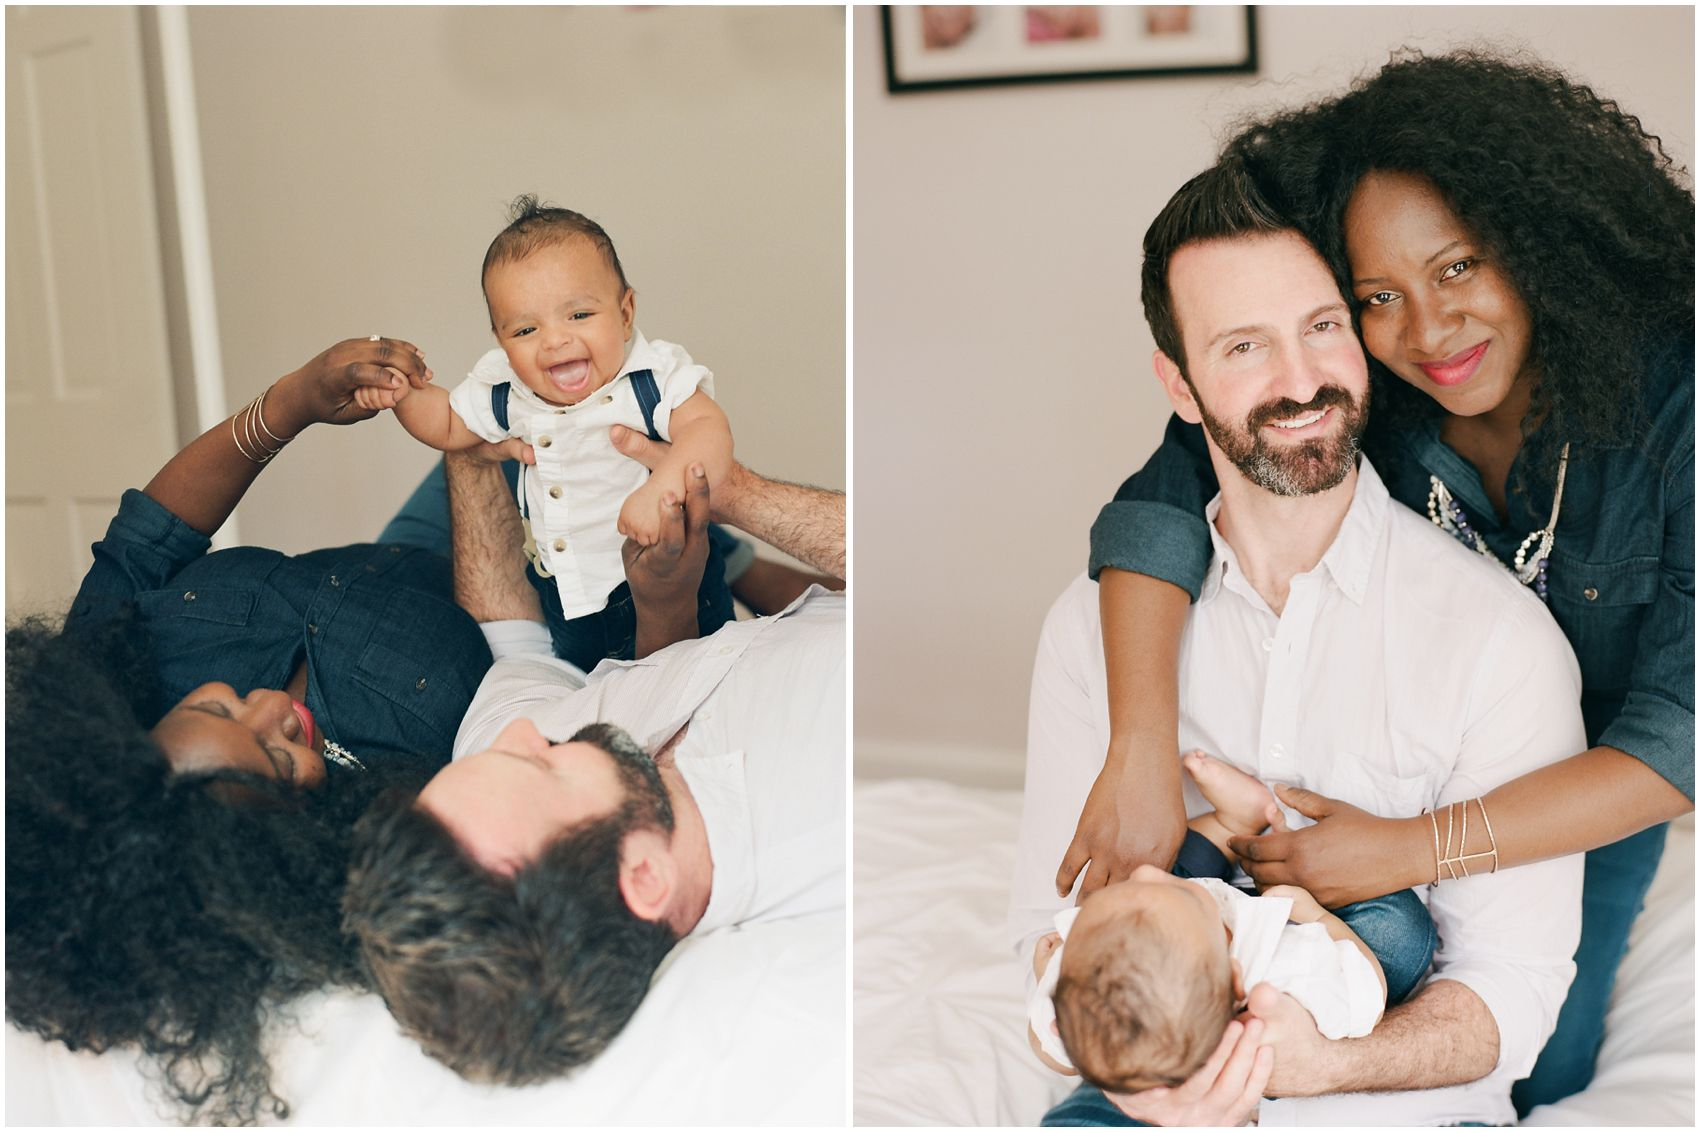 newborn portraits with parents and newborn baby boy in New York